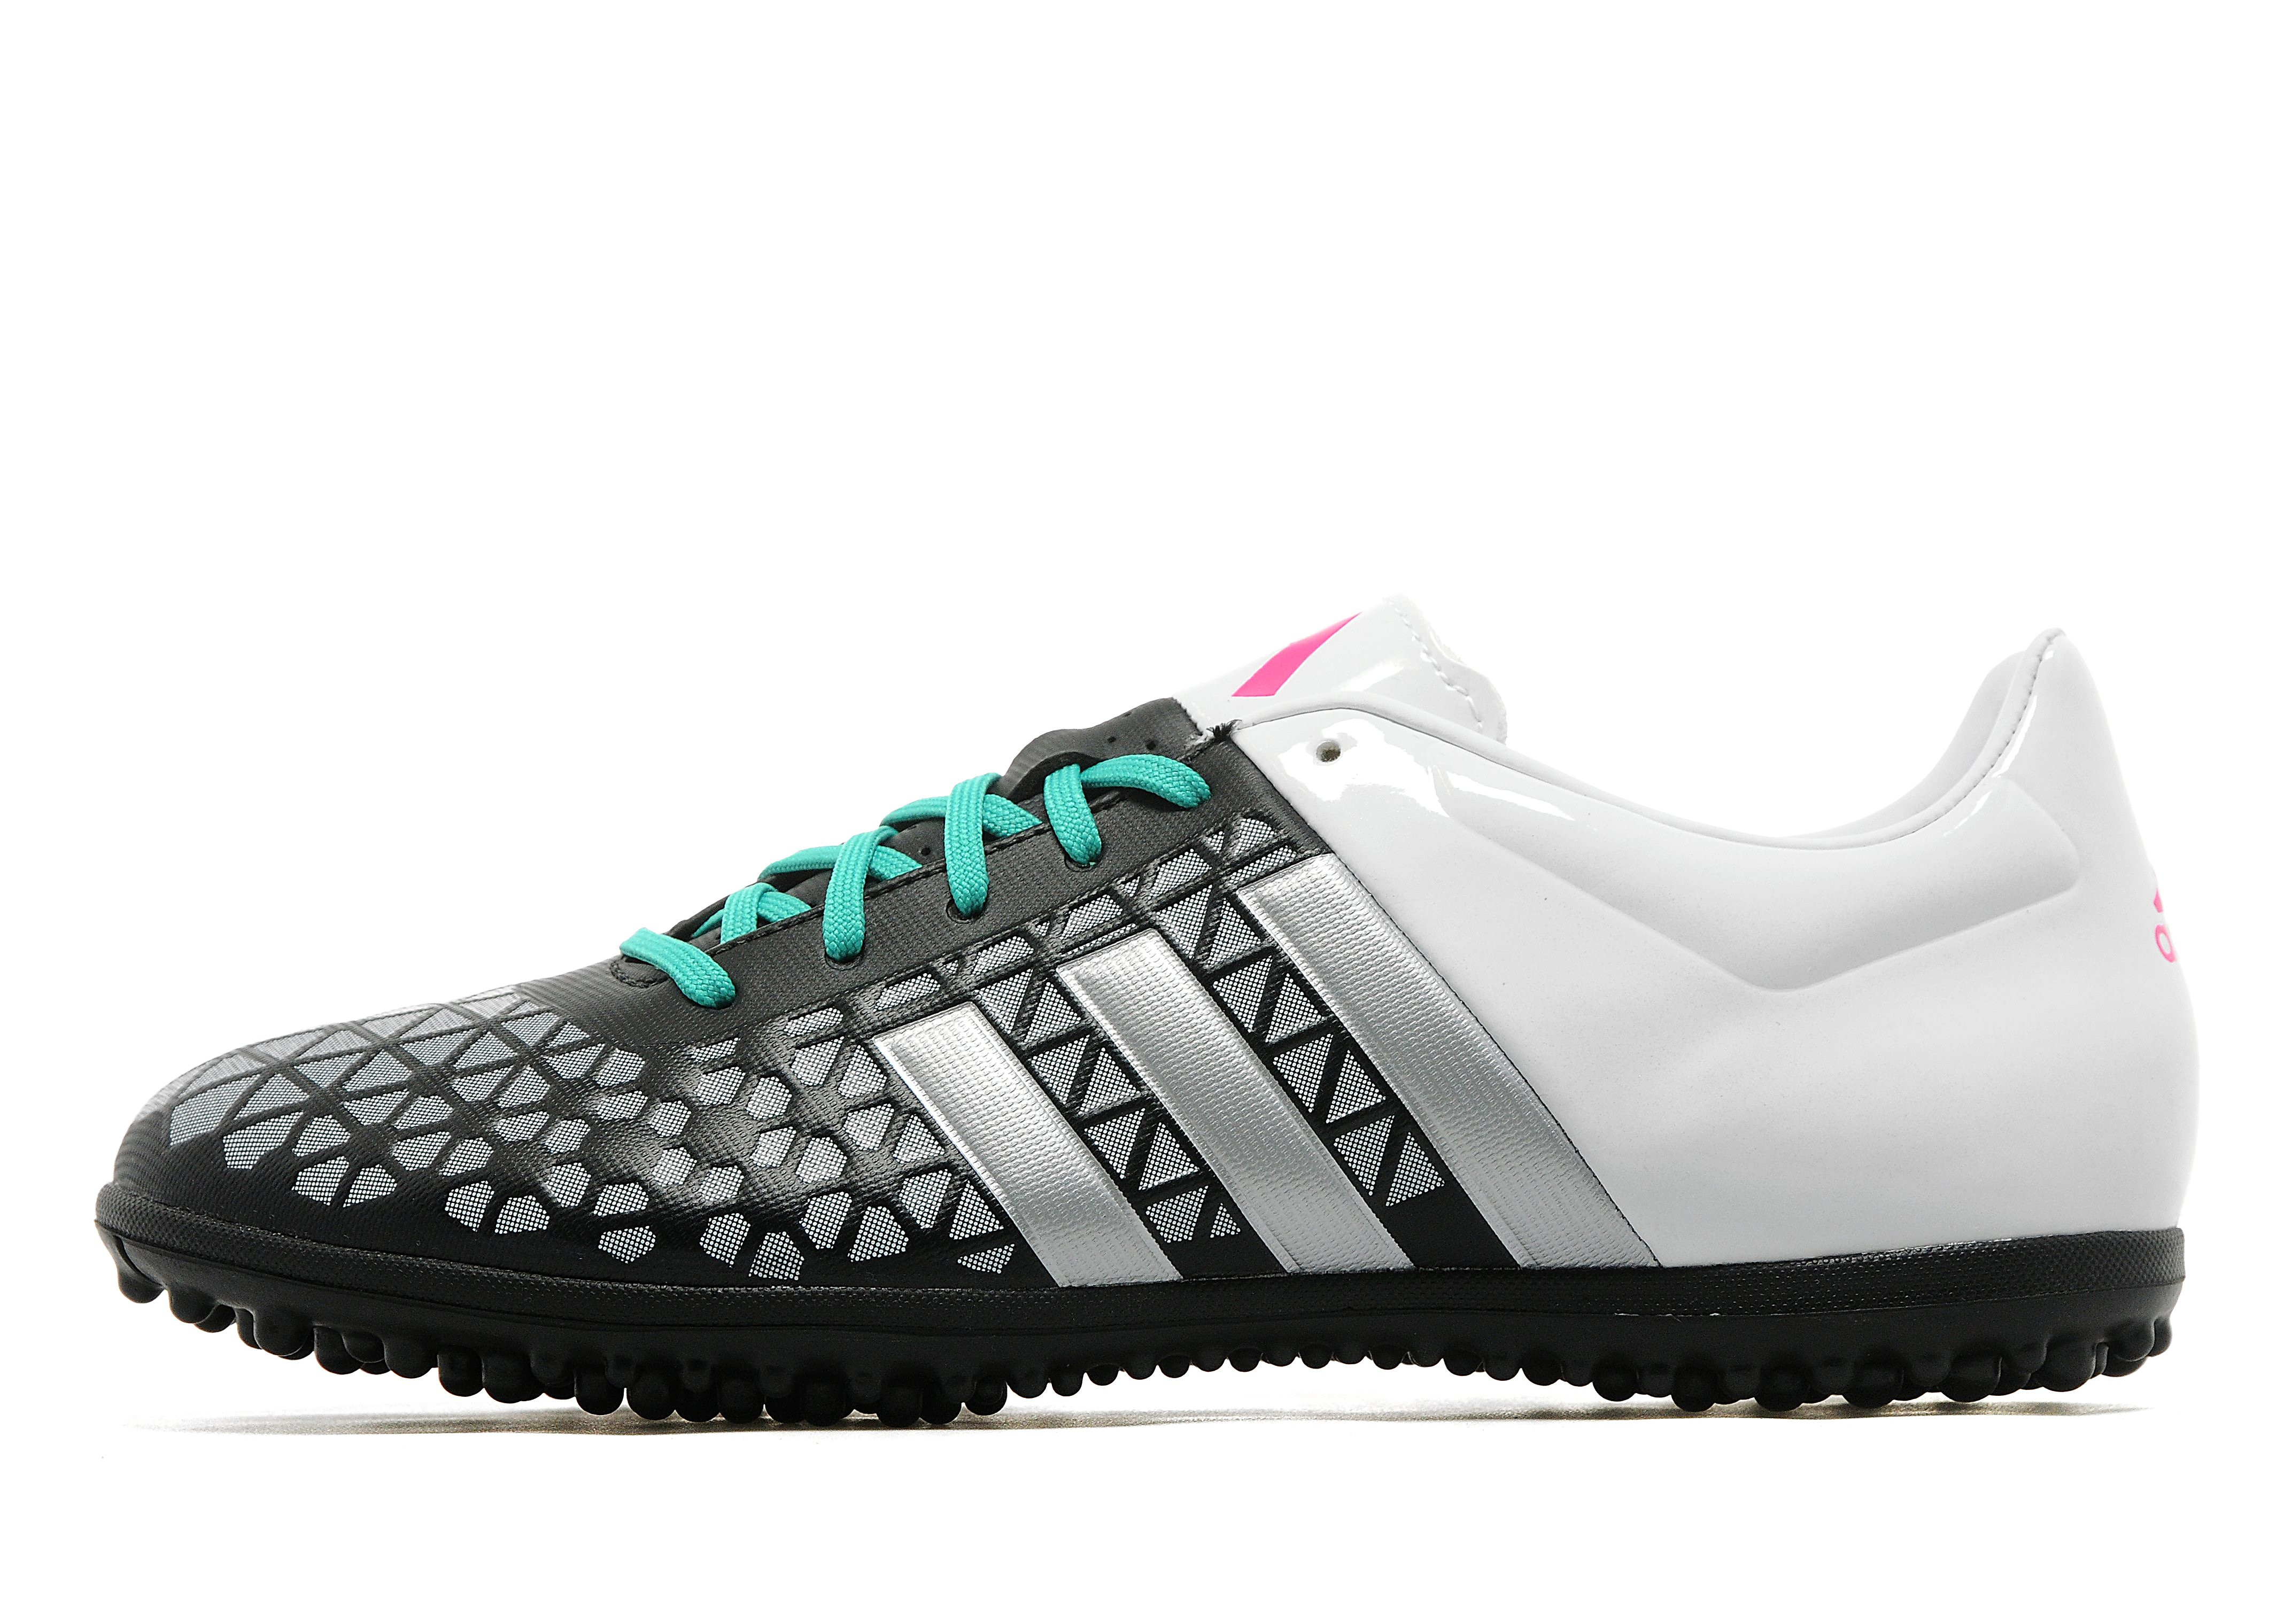 finest selection 94519 5ecad adidas ACE Football Boots PureControl - Sports King Store